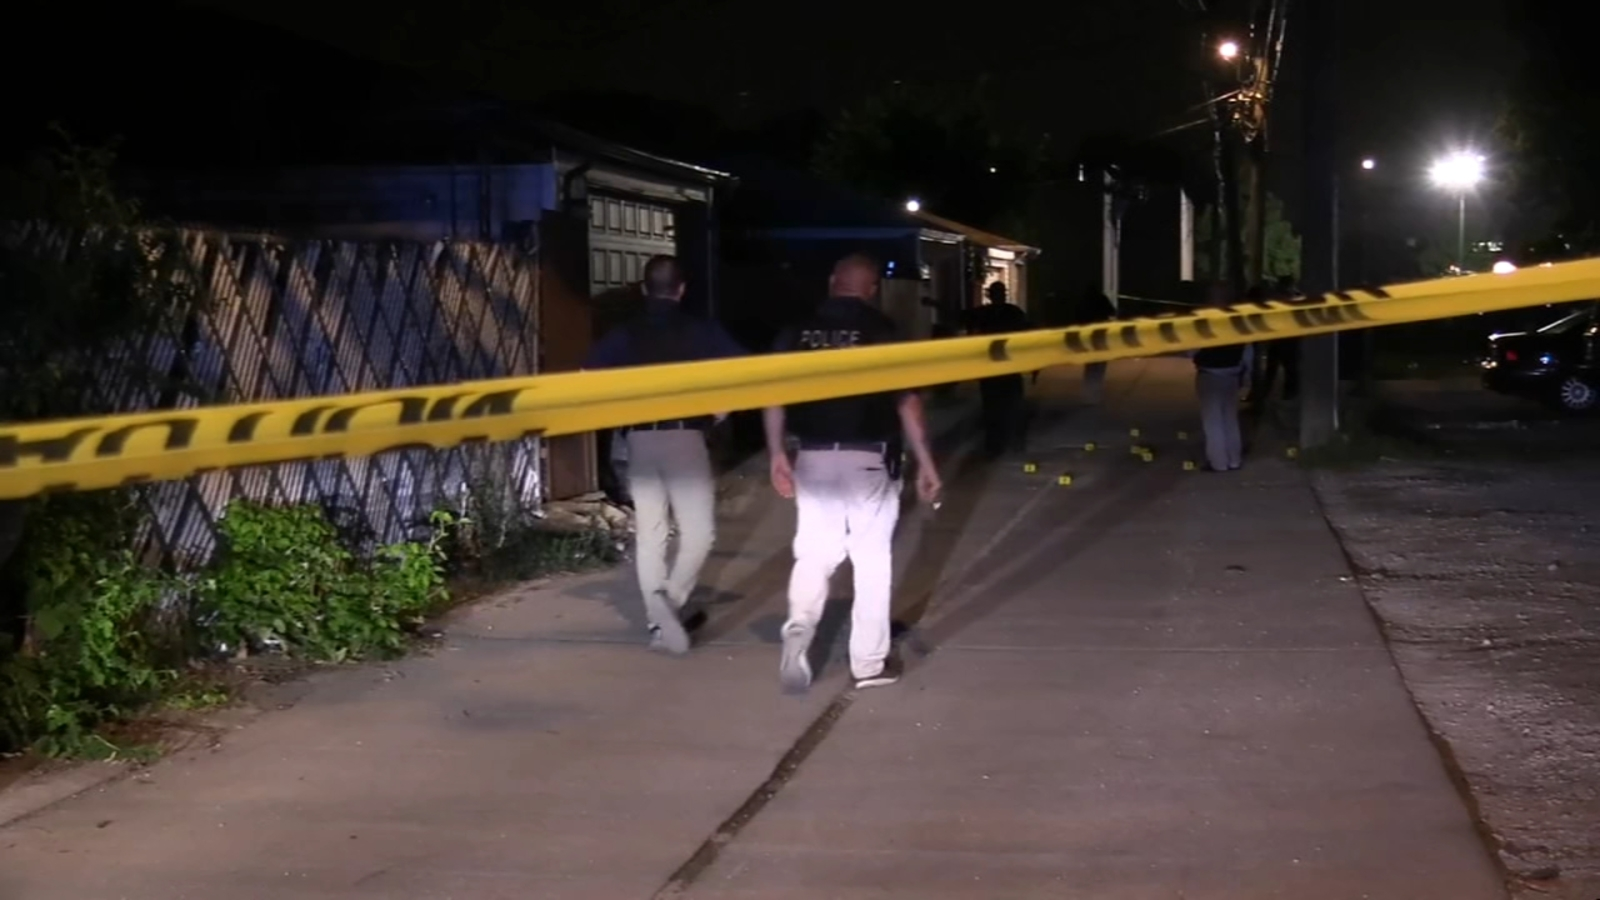 Chicago violence: 40 shot, 5 fatally, in weekend shootings across city, including triple shooting and teen boy, CPD says